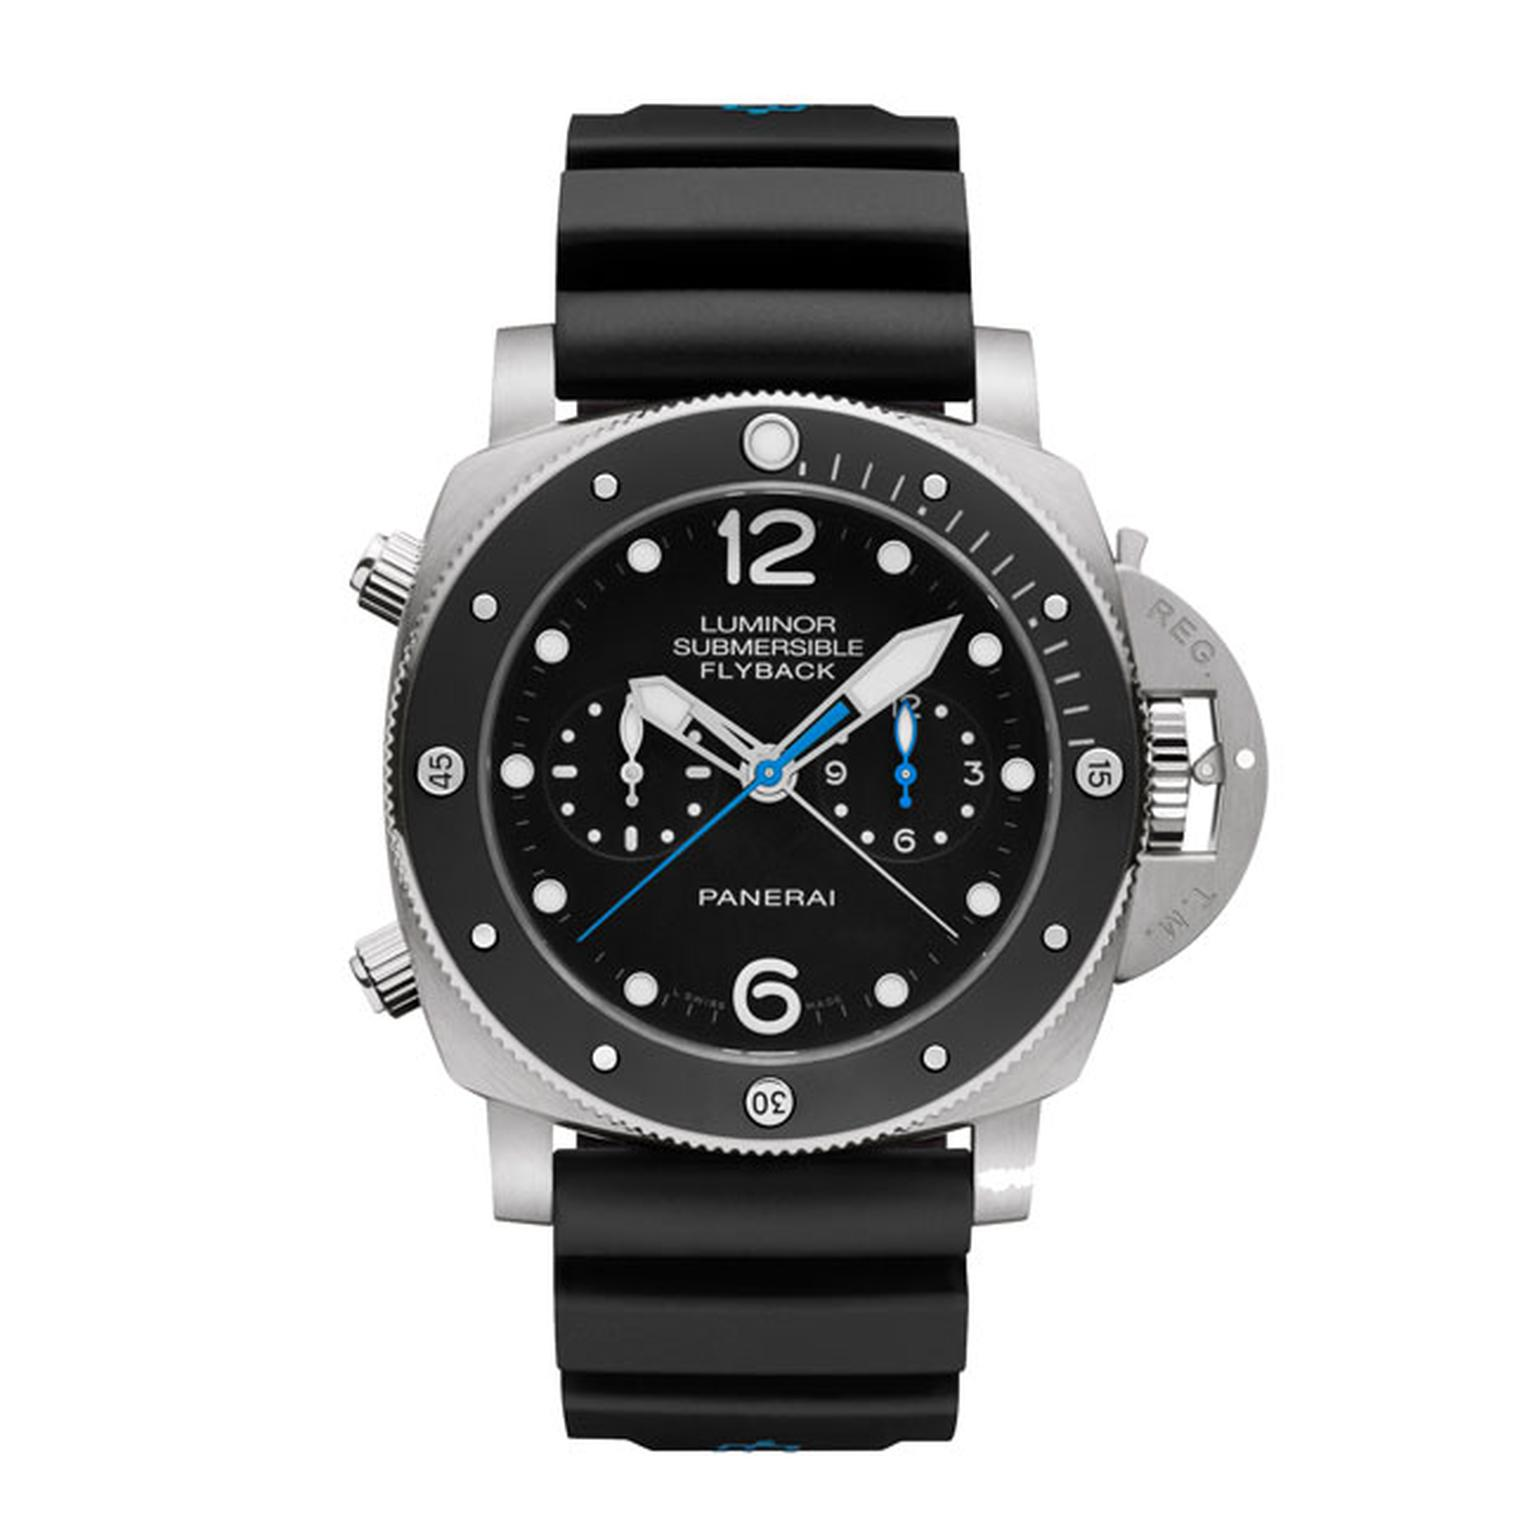 Panerai Luminor Submersible 1950 Flyback Chrono watch in titanium with a ceramic bezel